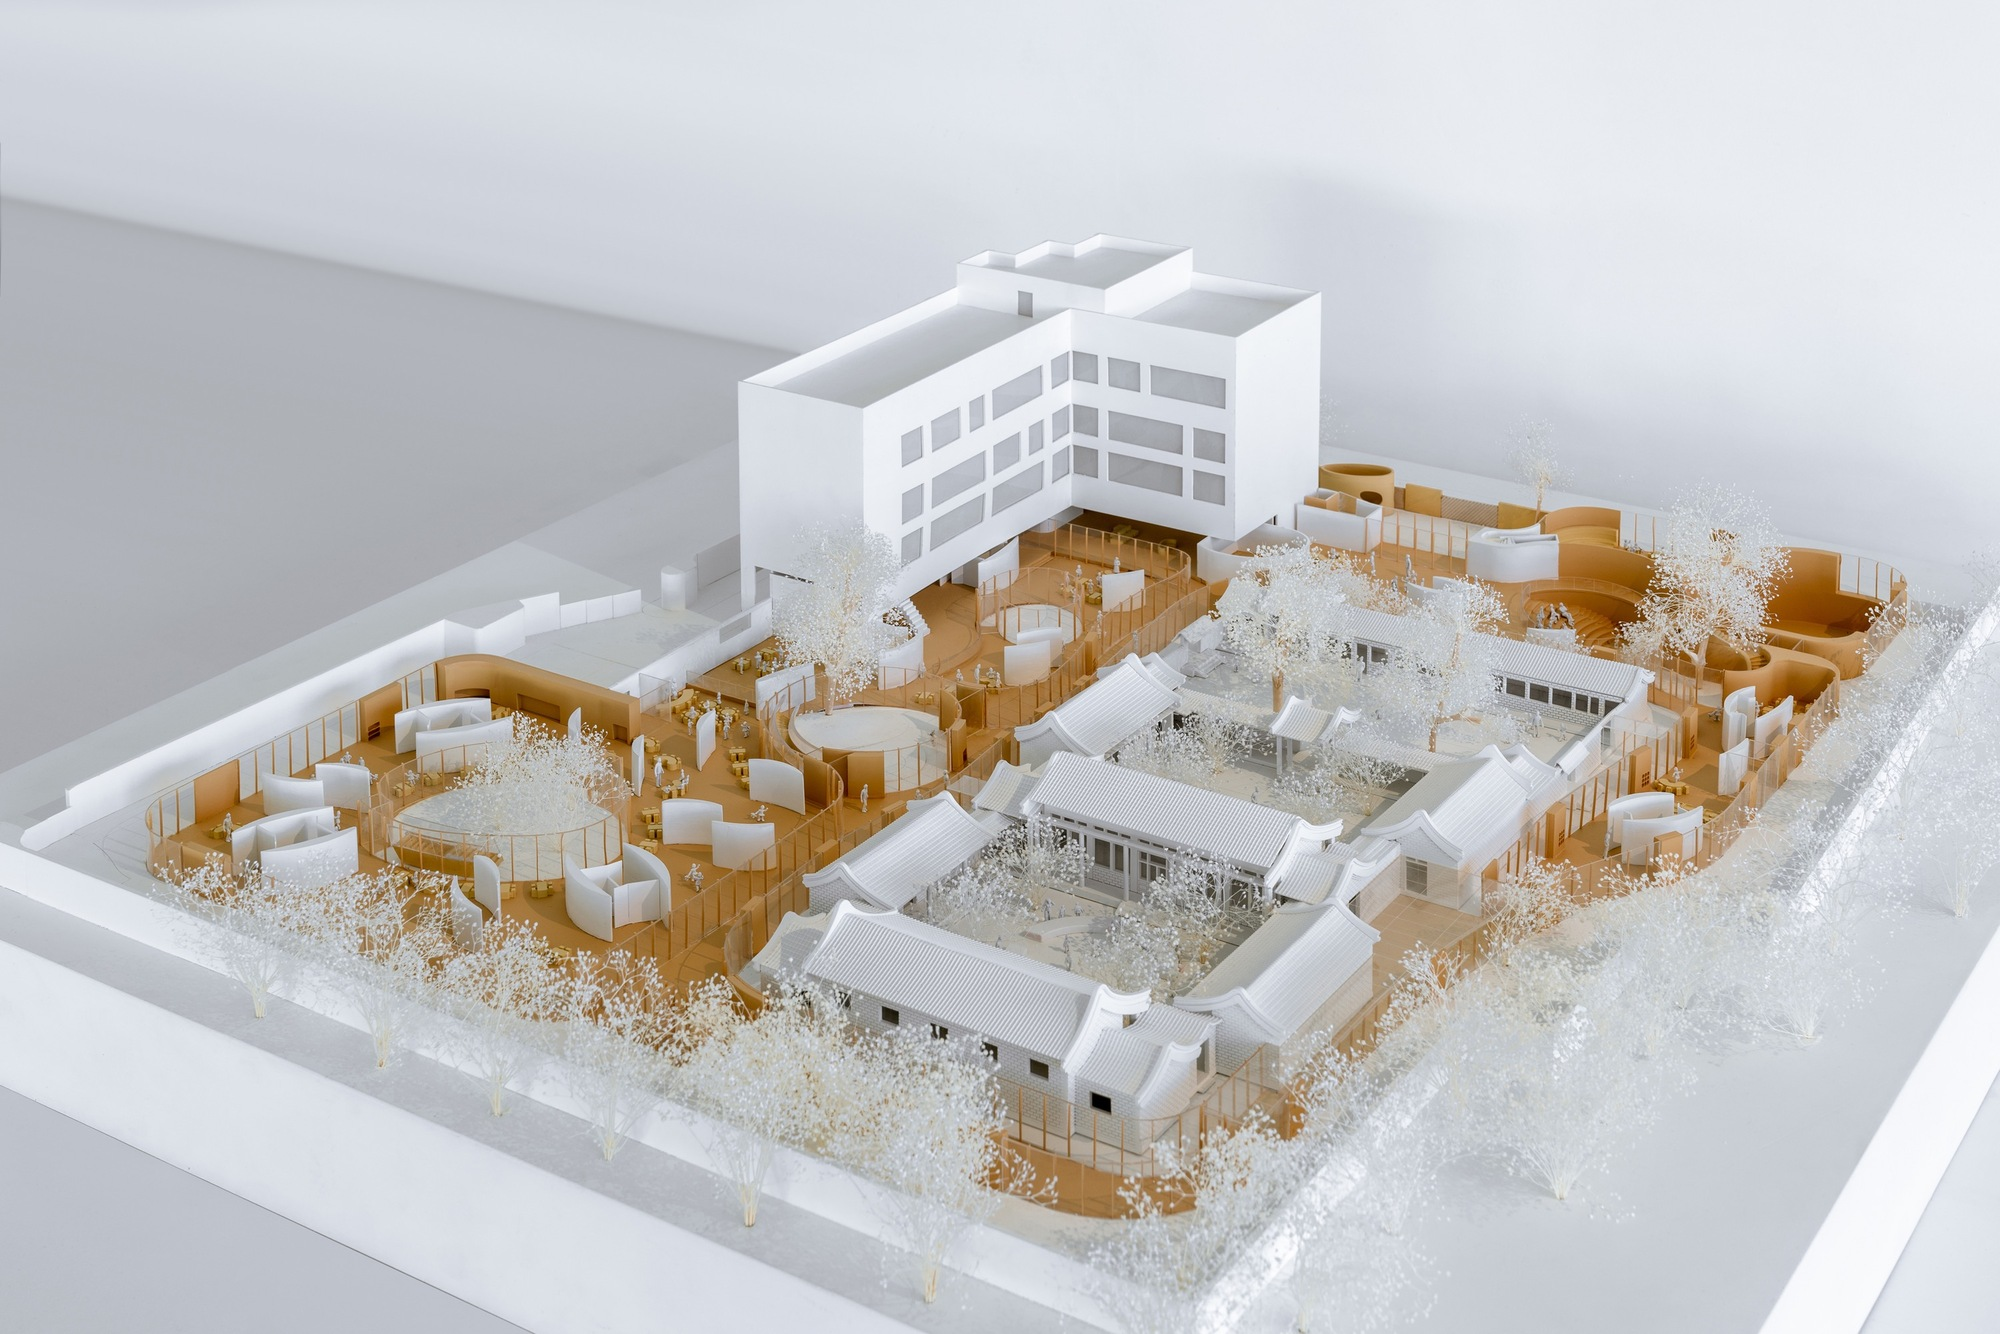 20_15_MAD_Courtyard_Kindergarten_model_by_CreatAR_Images.jpg